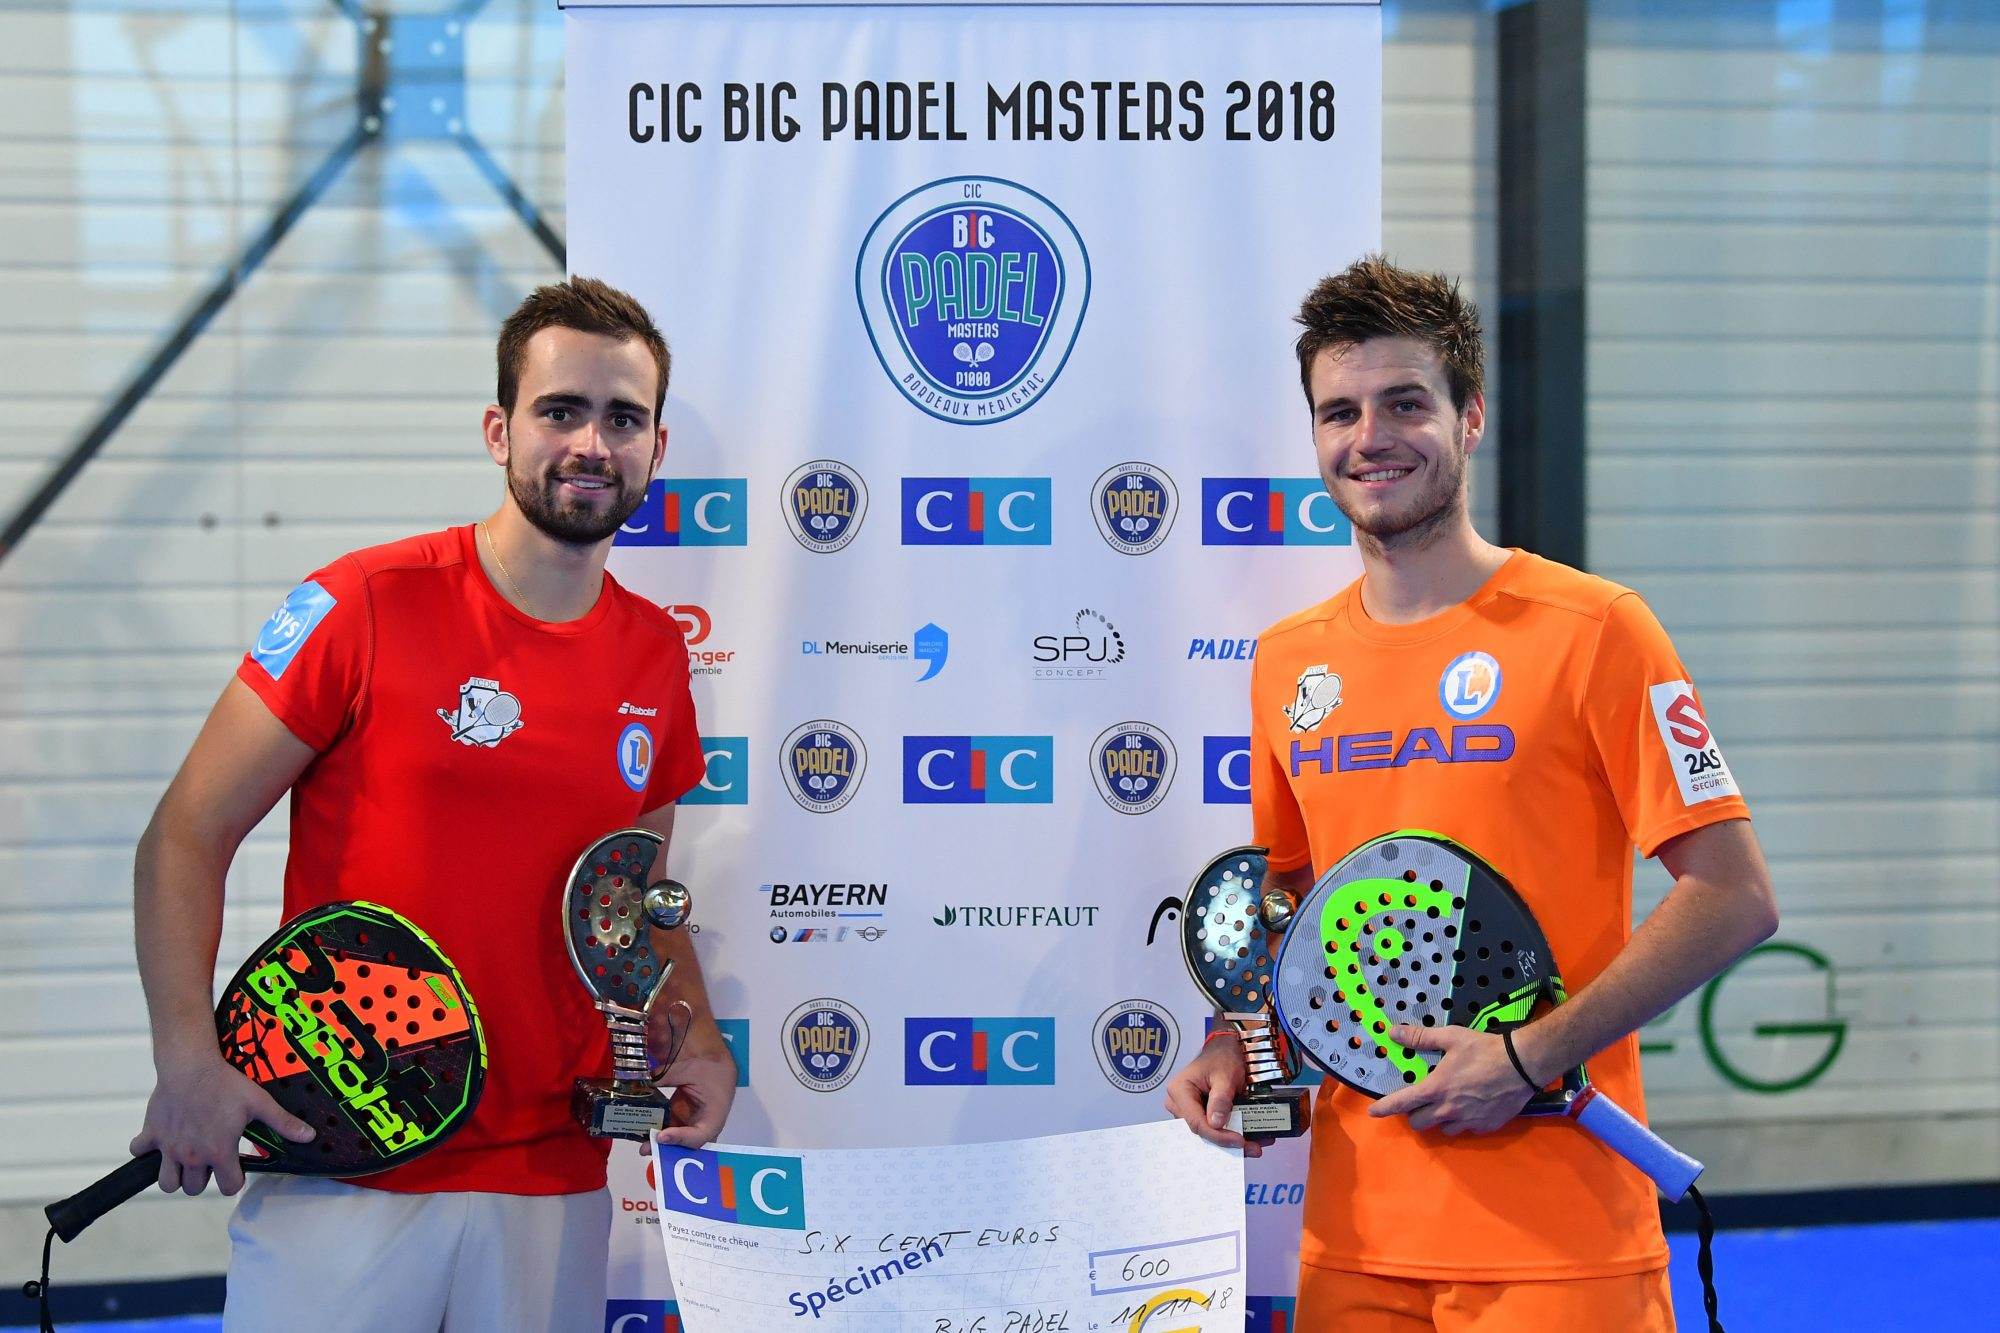 L'attraction Dipasquale / Clément au Big Padel Bordeaux